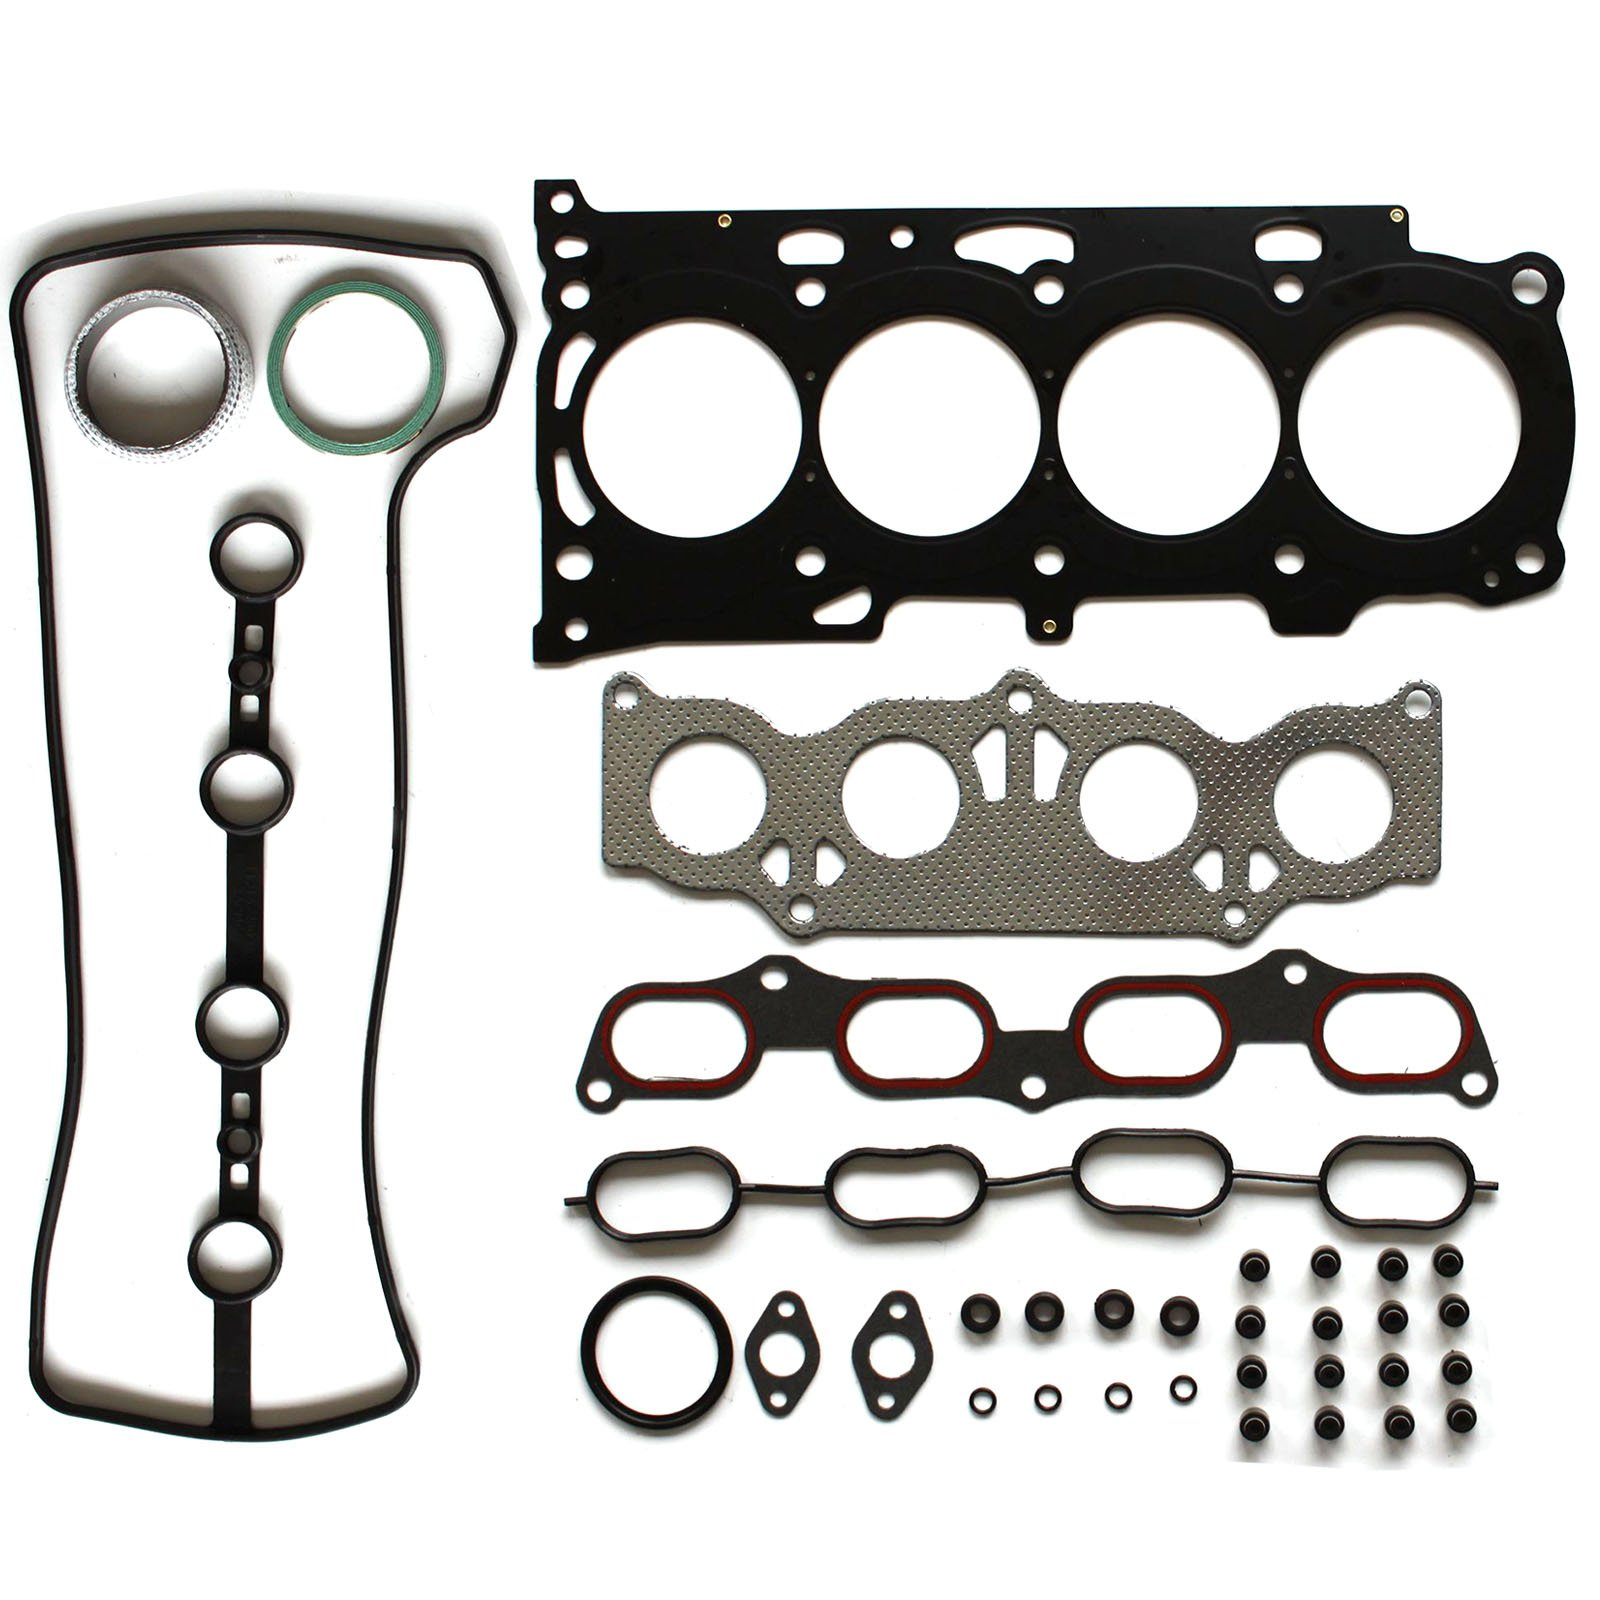 SCITOO Replacement for Engine Head Gasket Set fits Toyota Camry Lexus HS250H Scion Toyota 2.4L 16v 2AZFE Head Gaskets Kit Sets